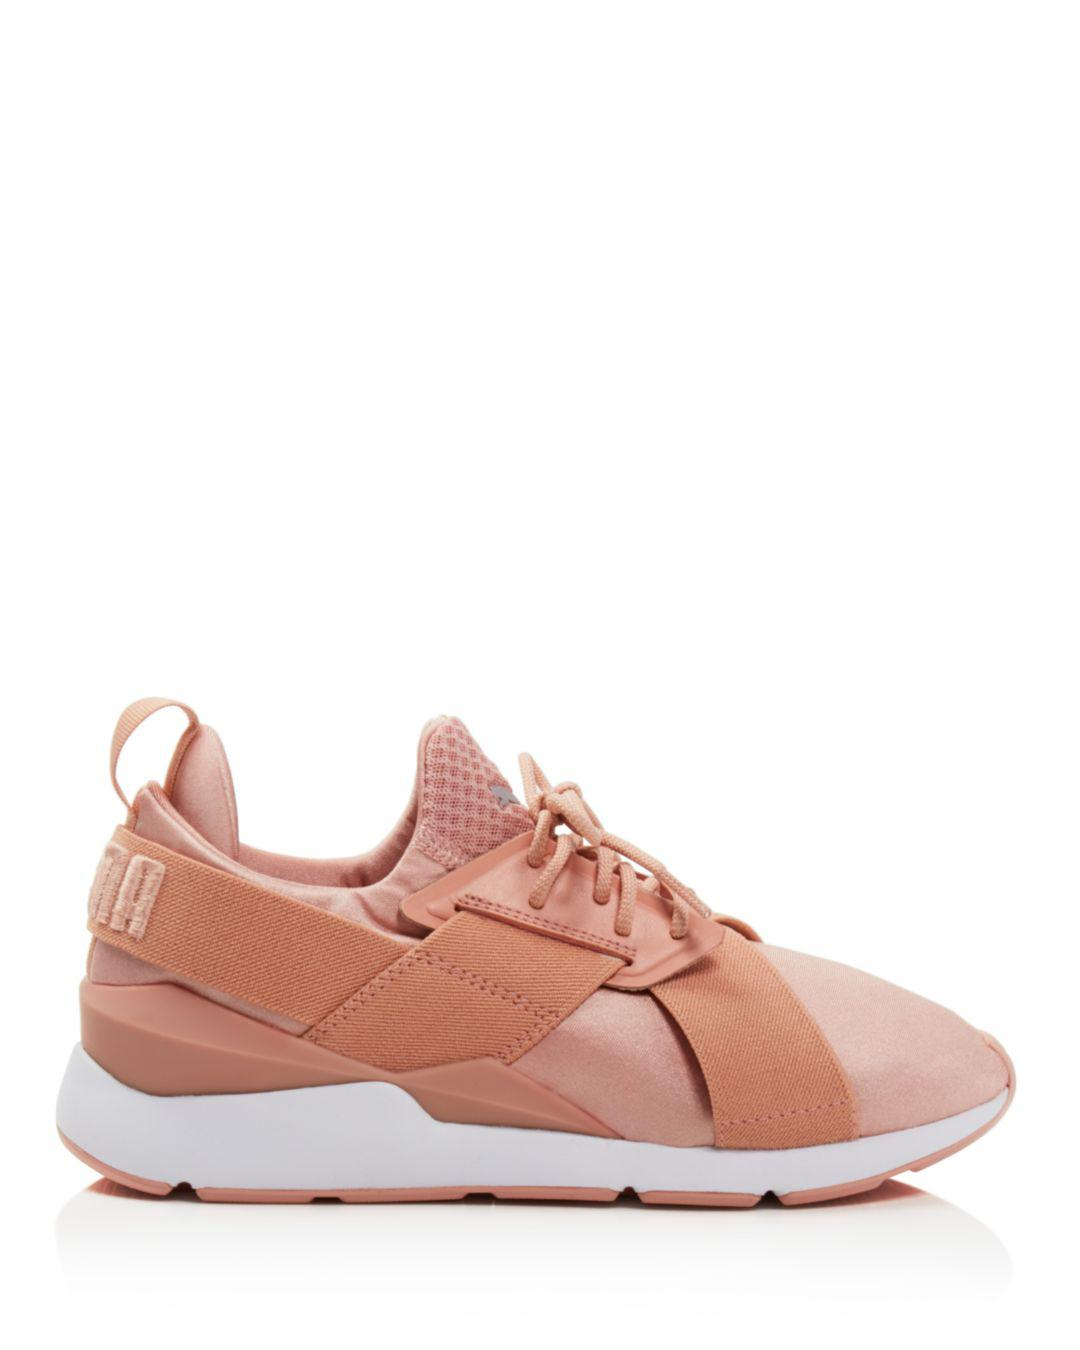 db4568da2e92 ... new zealand huge discount a20a2 68b9b lyst puma womens muse satin lace  up sneakers in pink